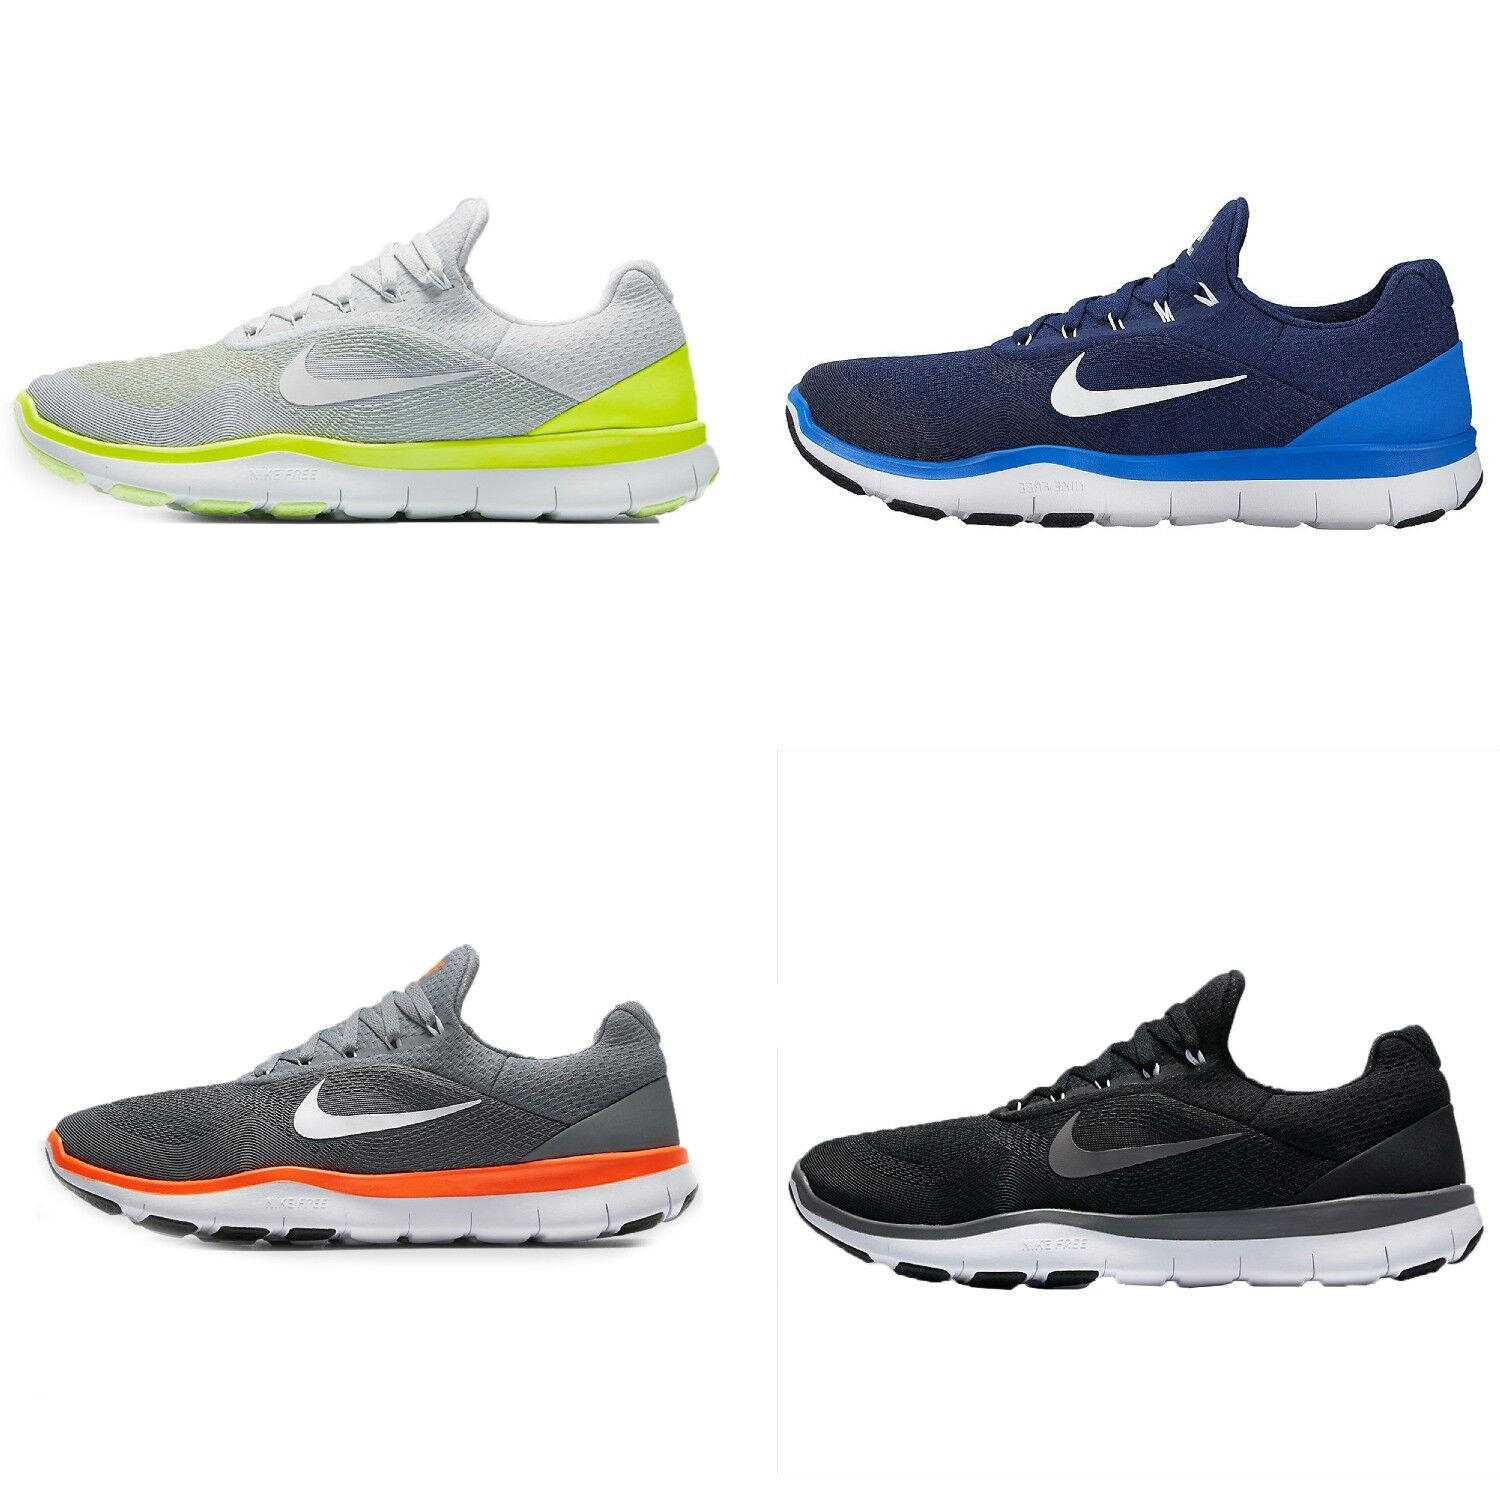 NIKE TRAINER GRATIS V7 shoes da corsa sport trainingsschuh Sneakers Tessile